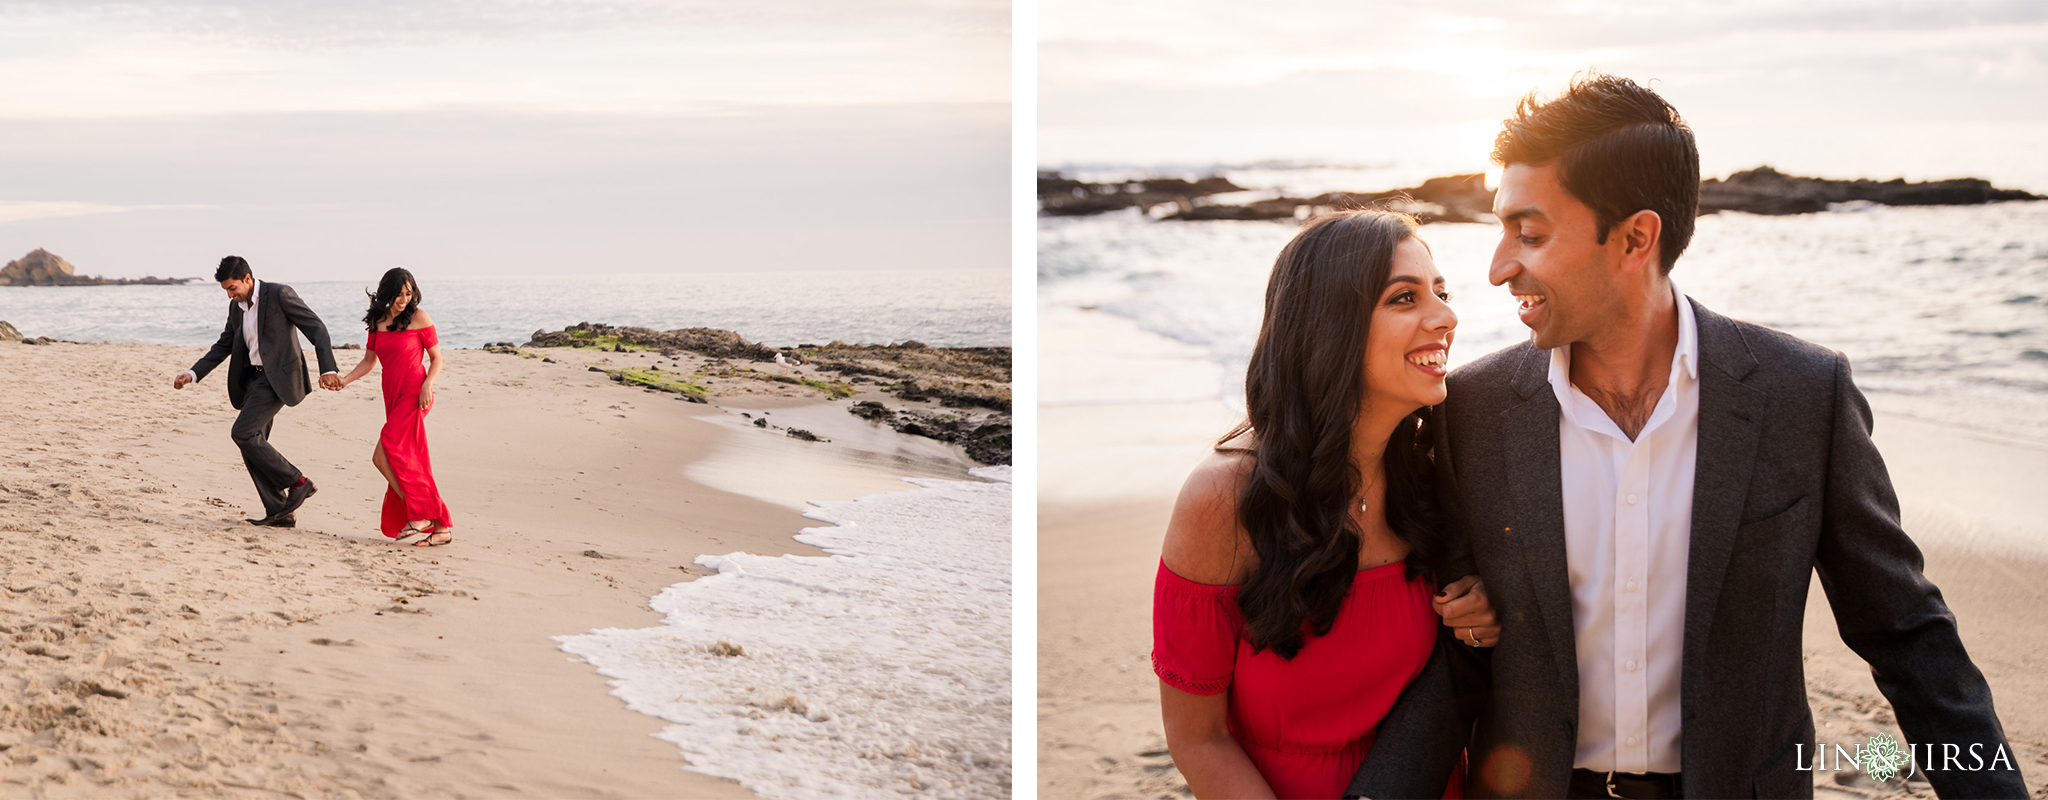 06 Victoria Beach Orange County Engagement Photography